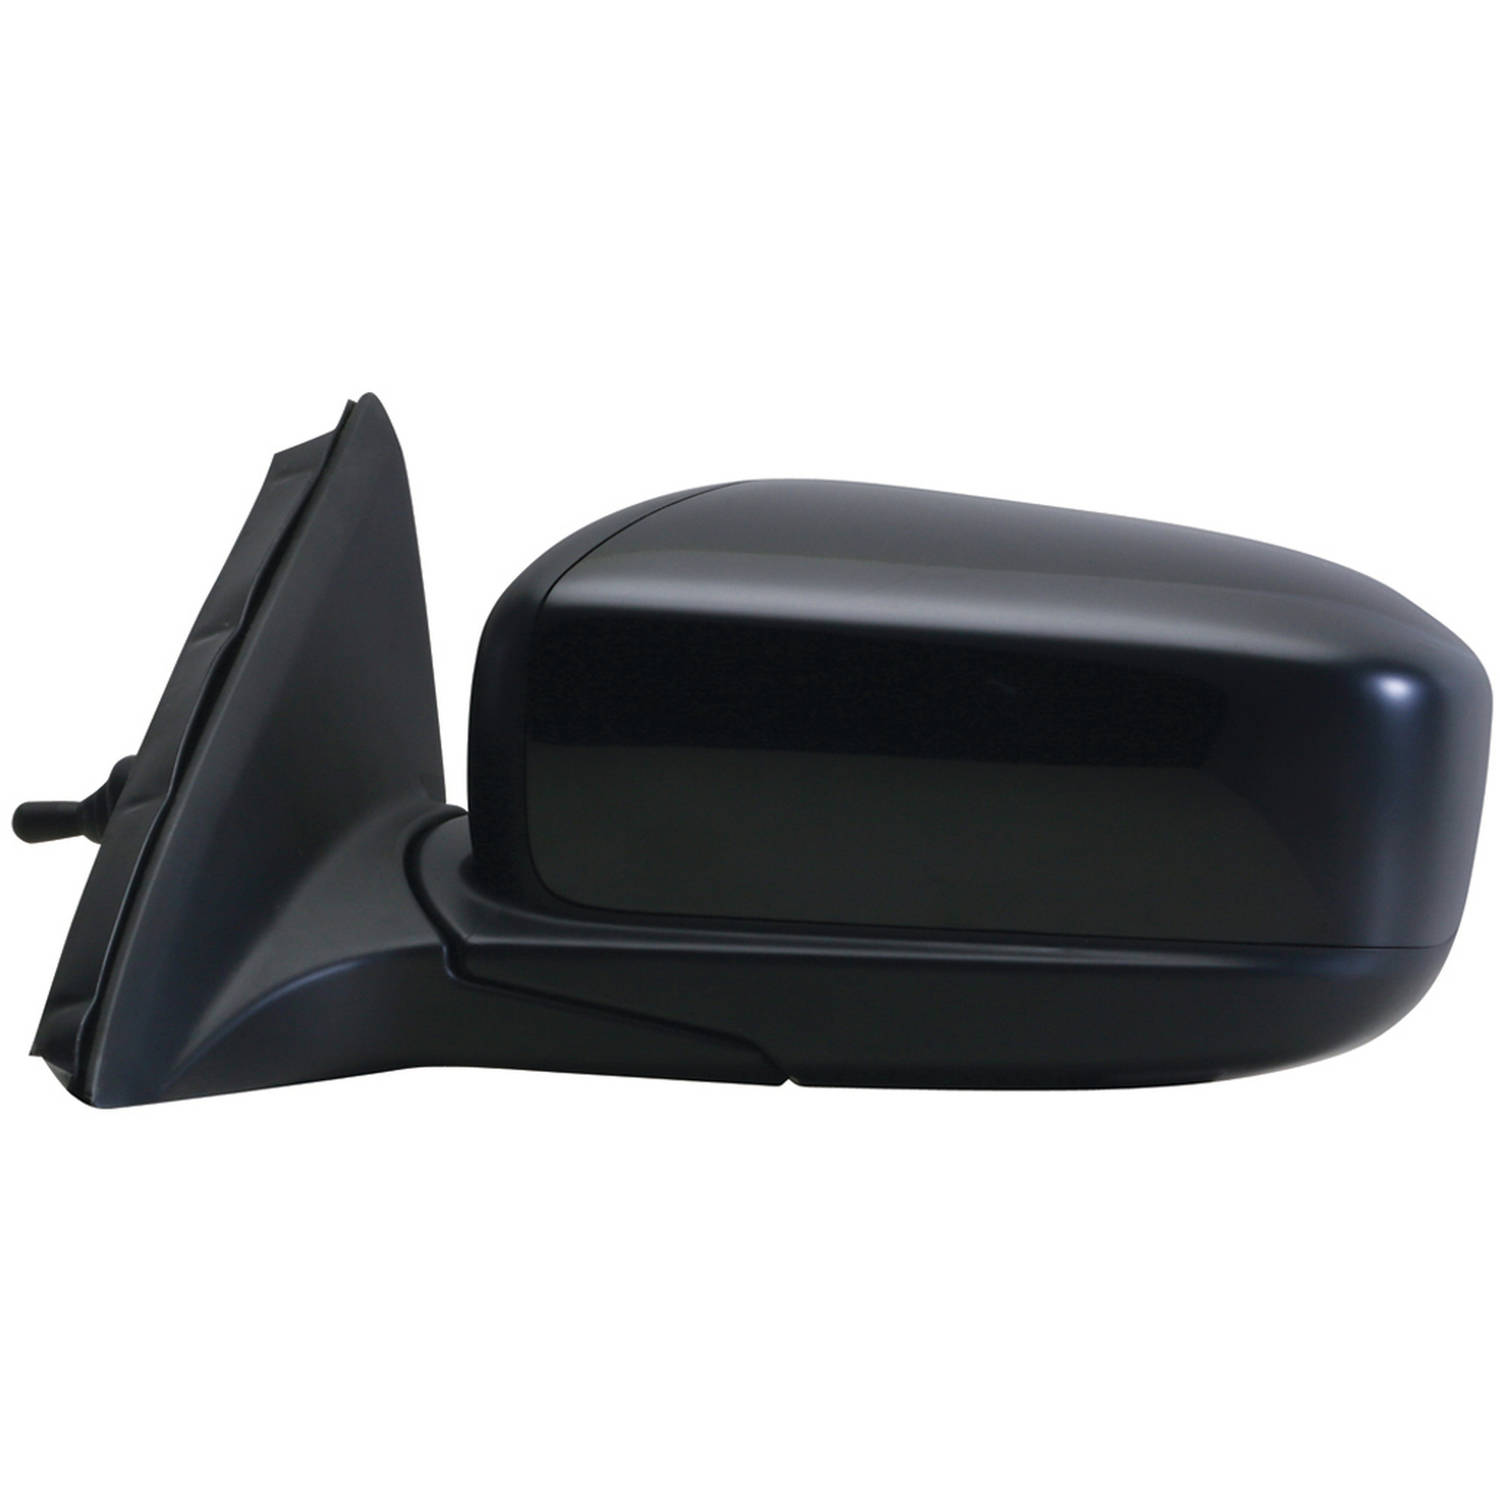 63562H - Fit System 03-07 Honda Accord Sedan OEM Replacement Mirror, Black, Foldaway, Driver Side, Manual Remote